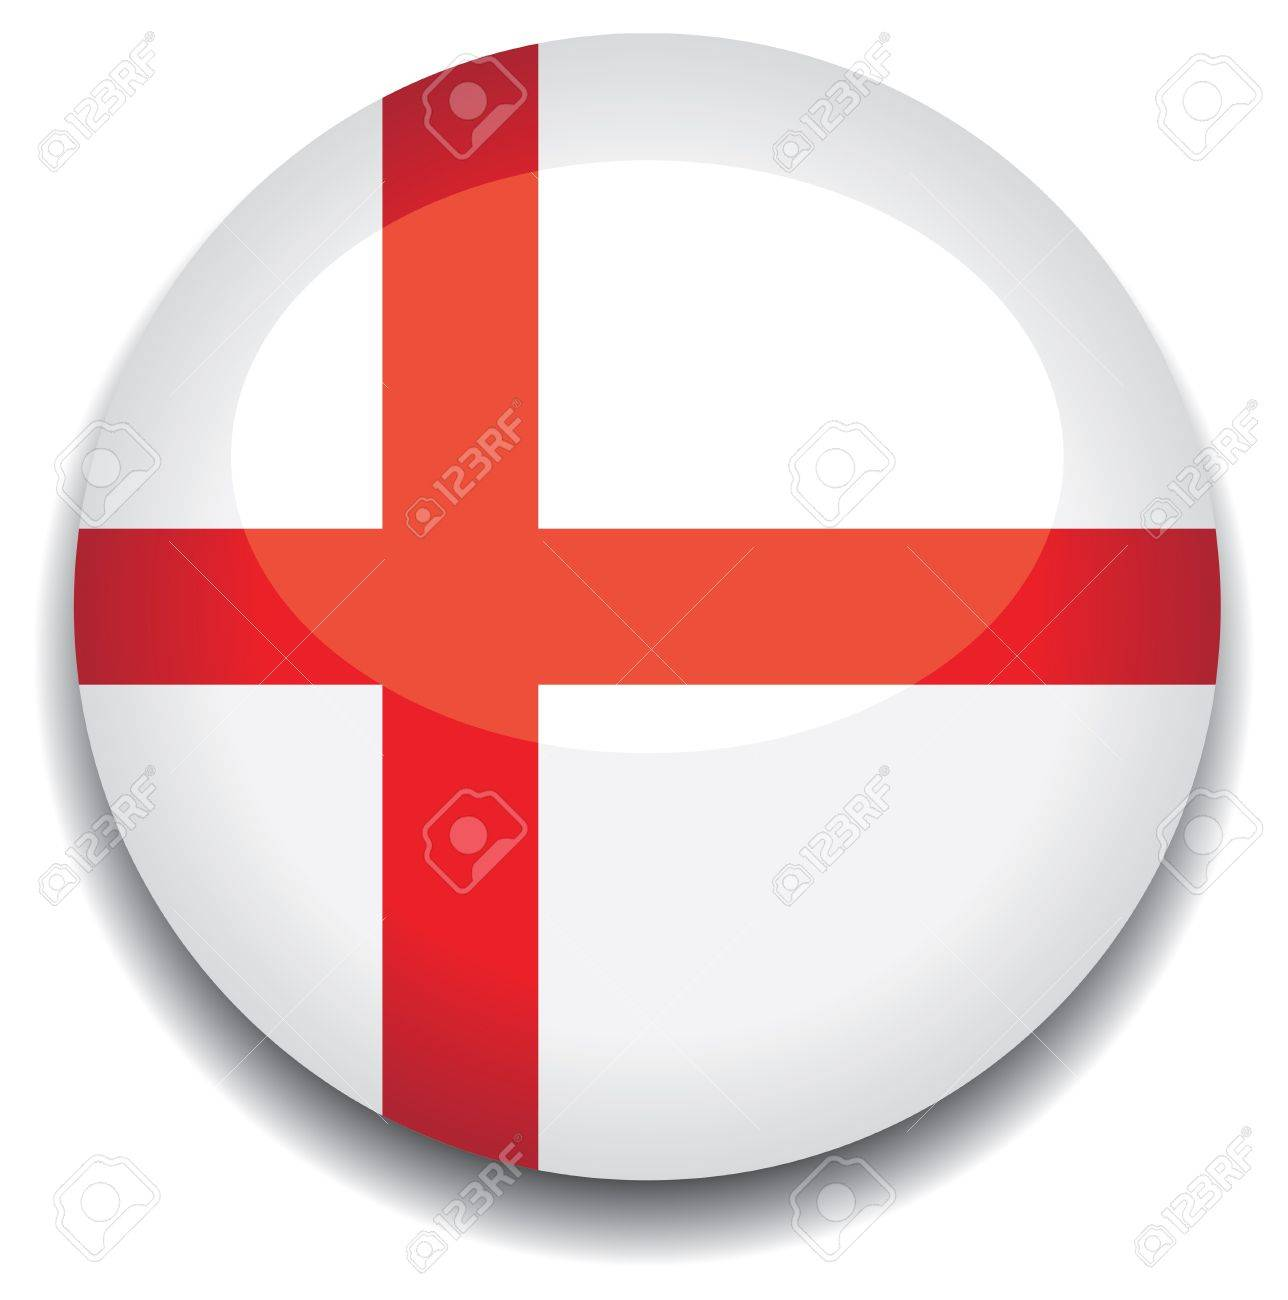 england flag in a button royalty free cliparts vectors and stock